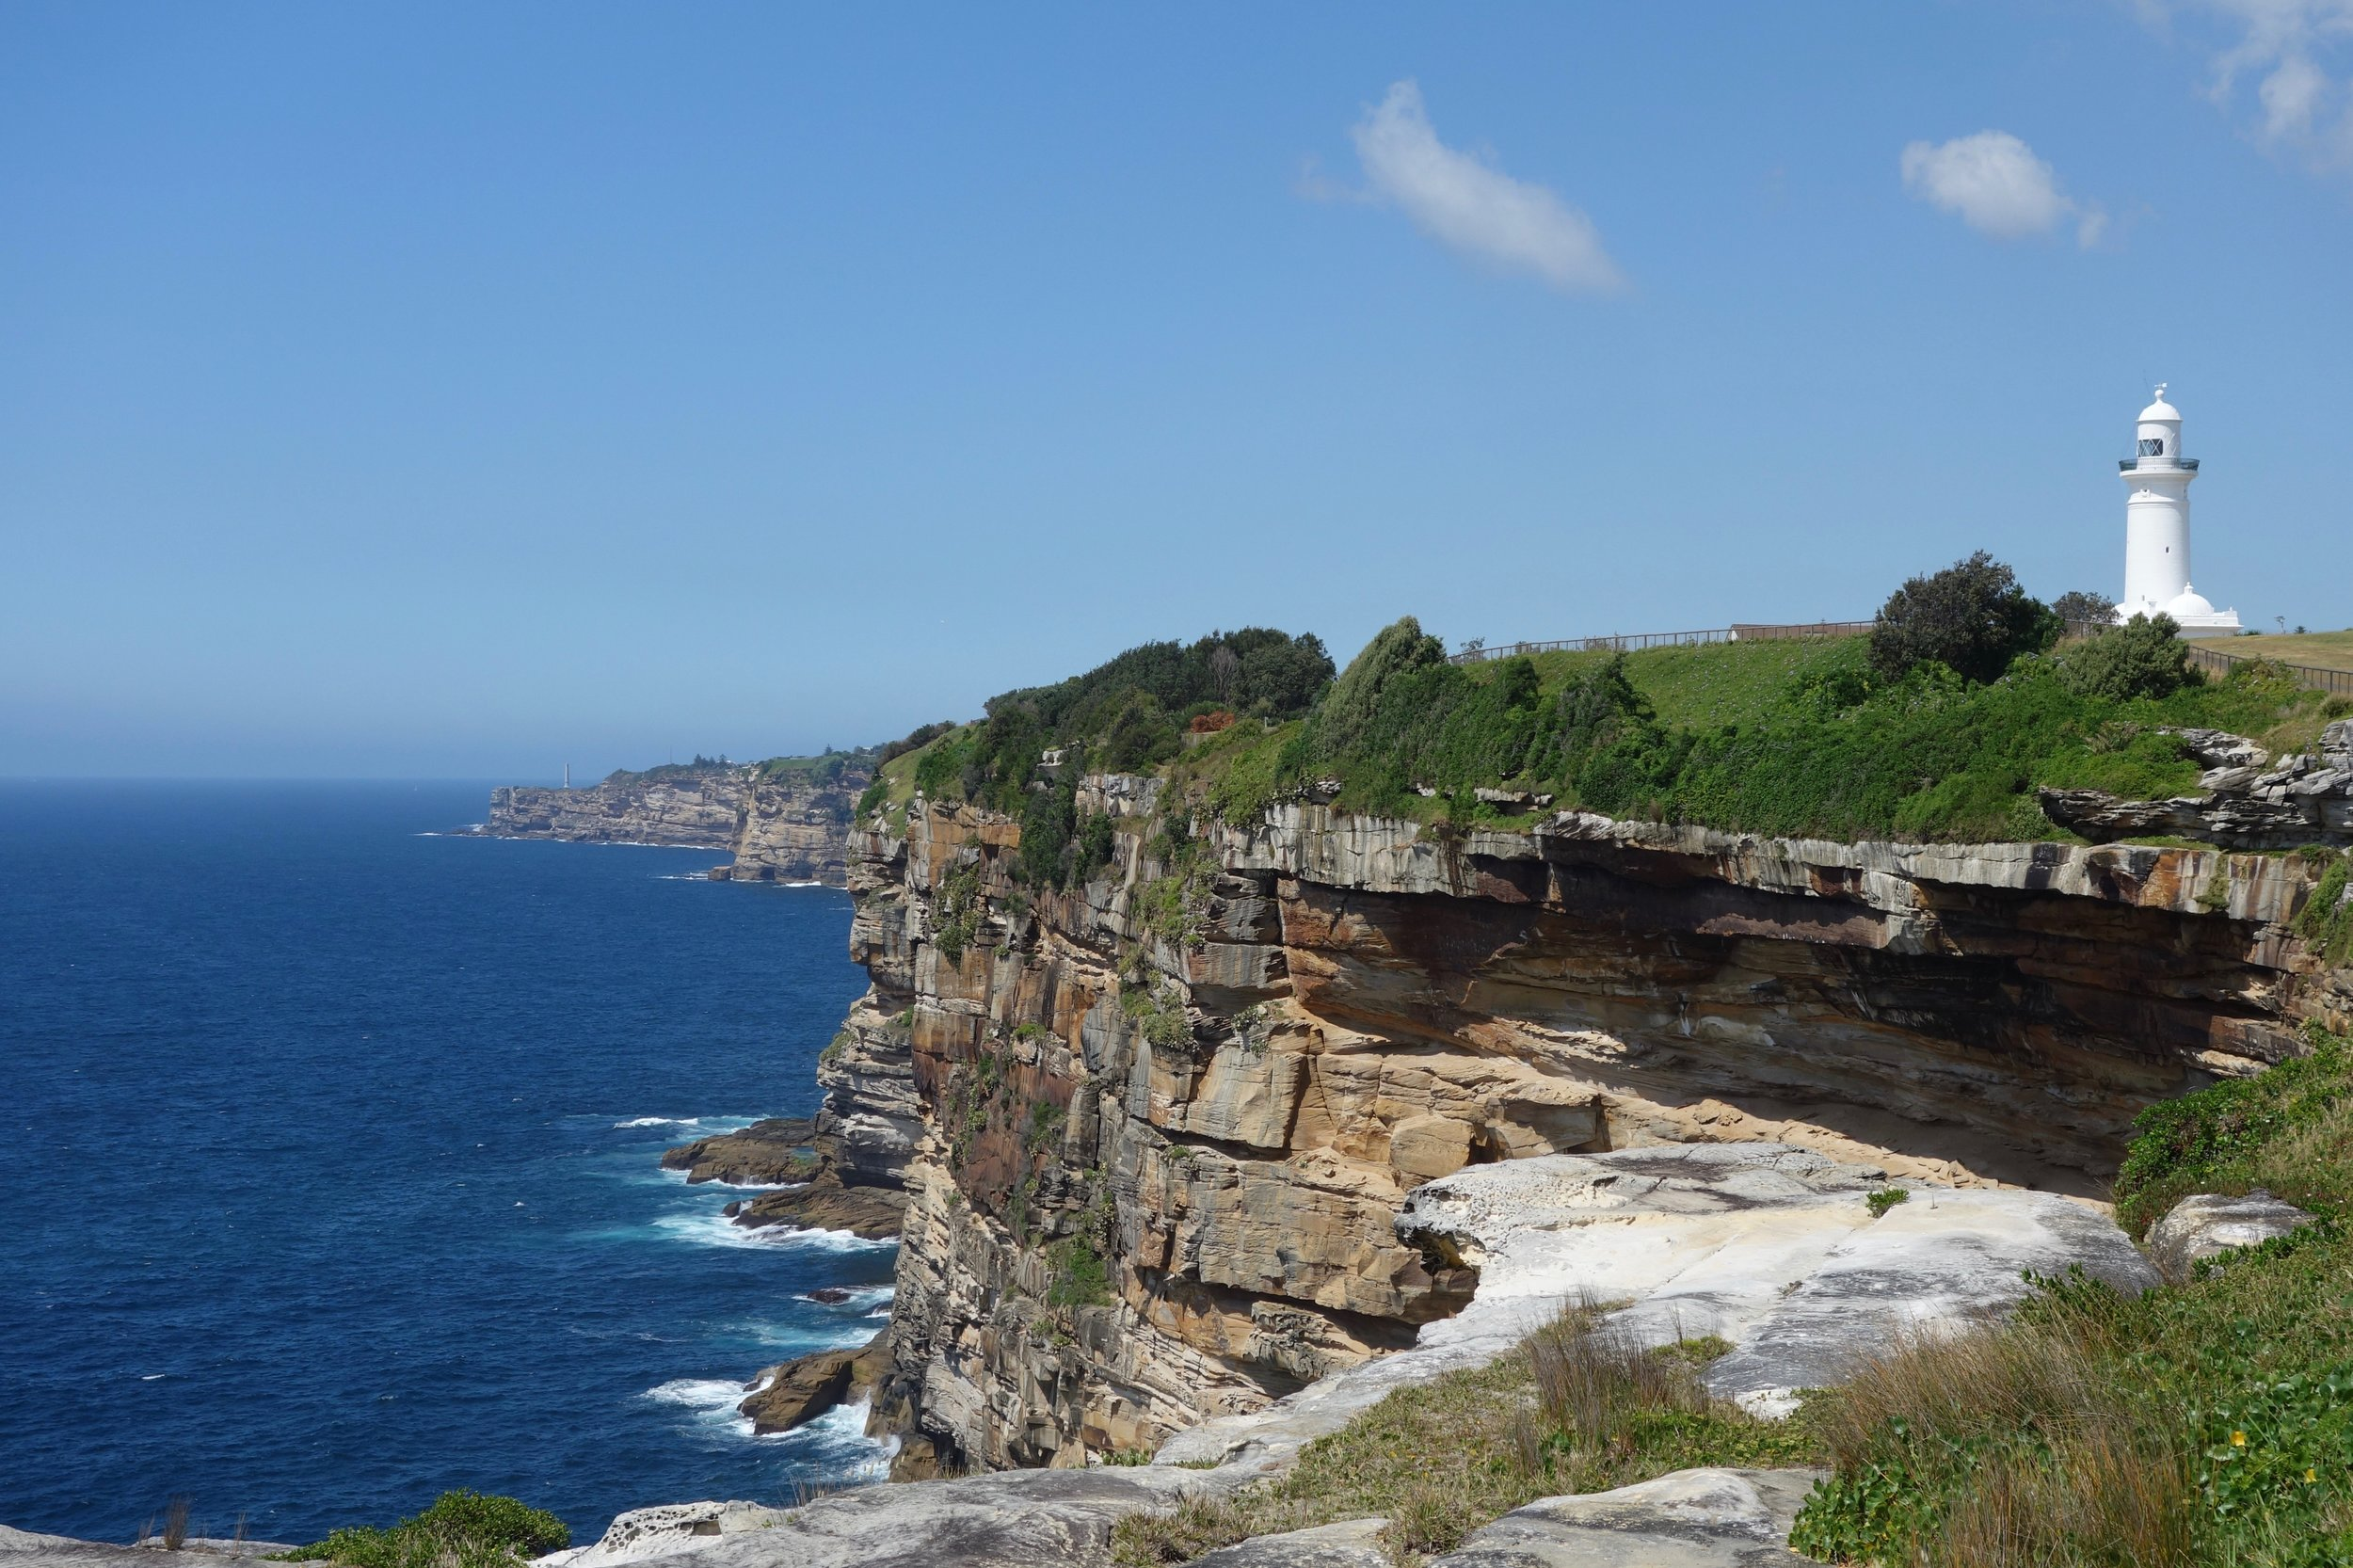 Many miles of trails around Sydney are perched on high oceanside cliffs.